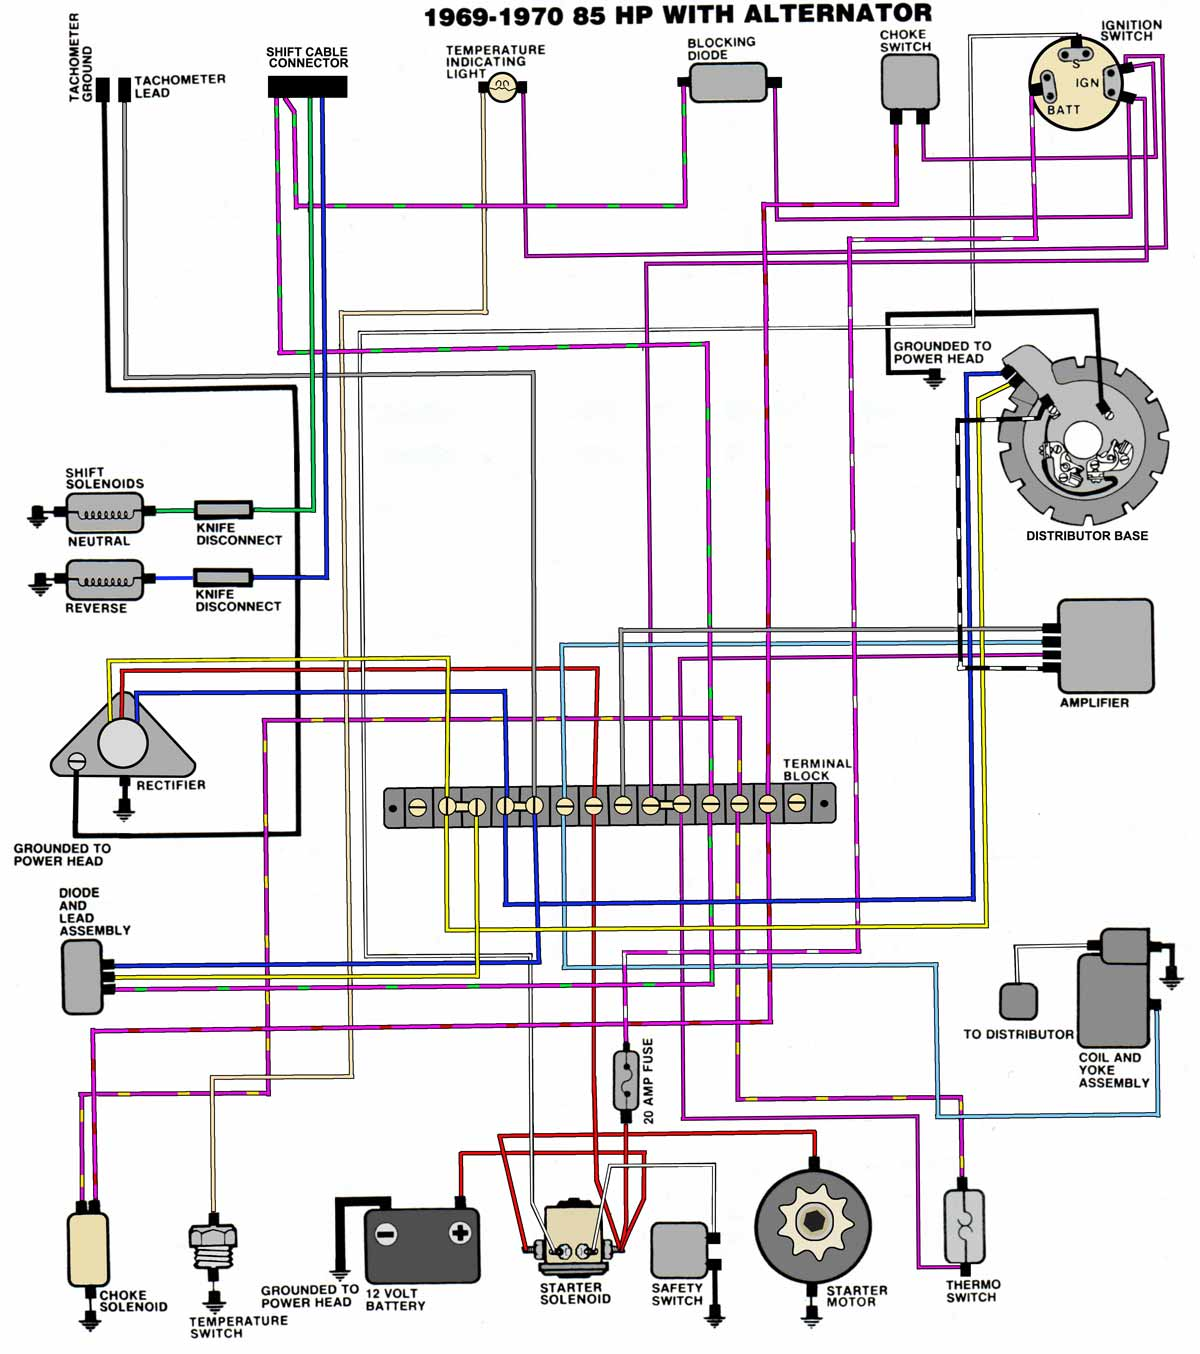 hight resolution of johnson outboard ignition switch wiring diagram wiring diagrams terms evinrude johnson outboard wiring diagrams mastertech marine